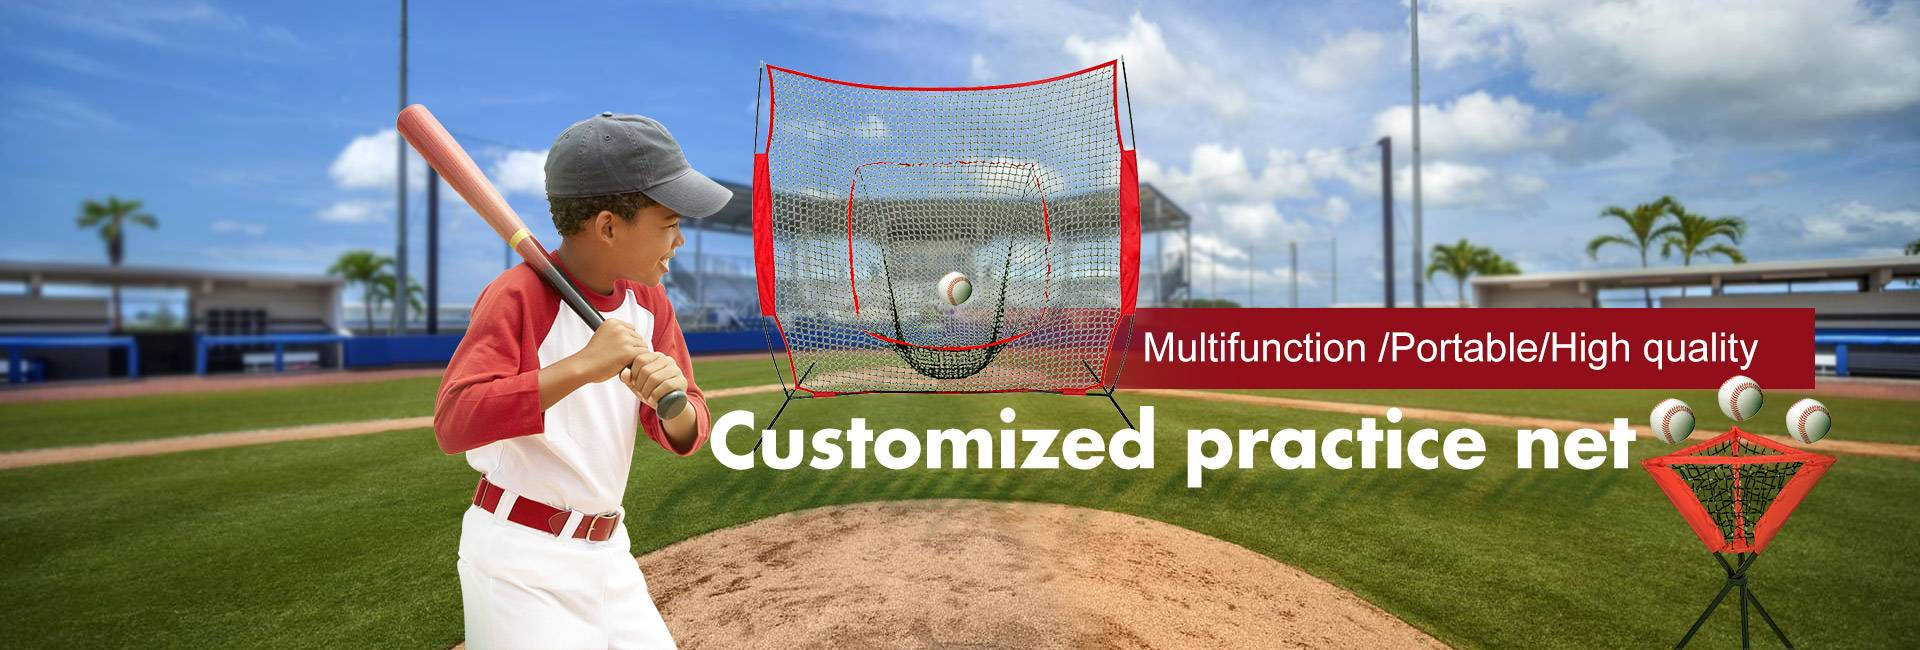 Customized practice net